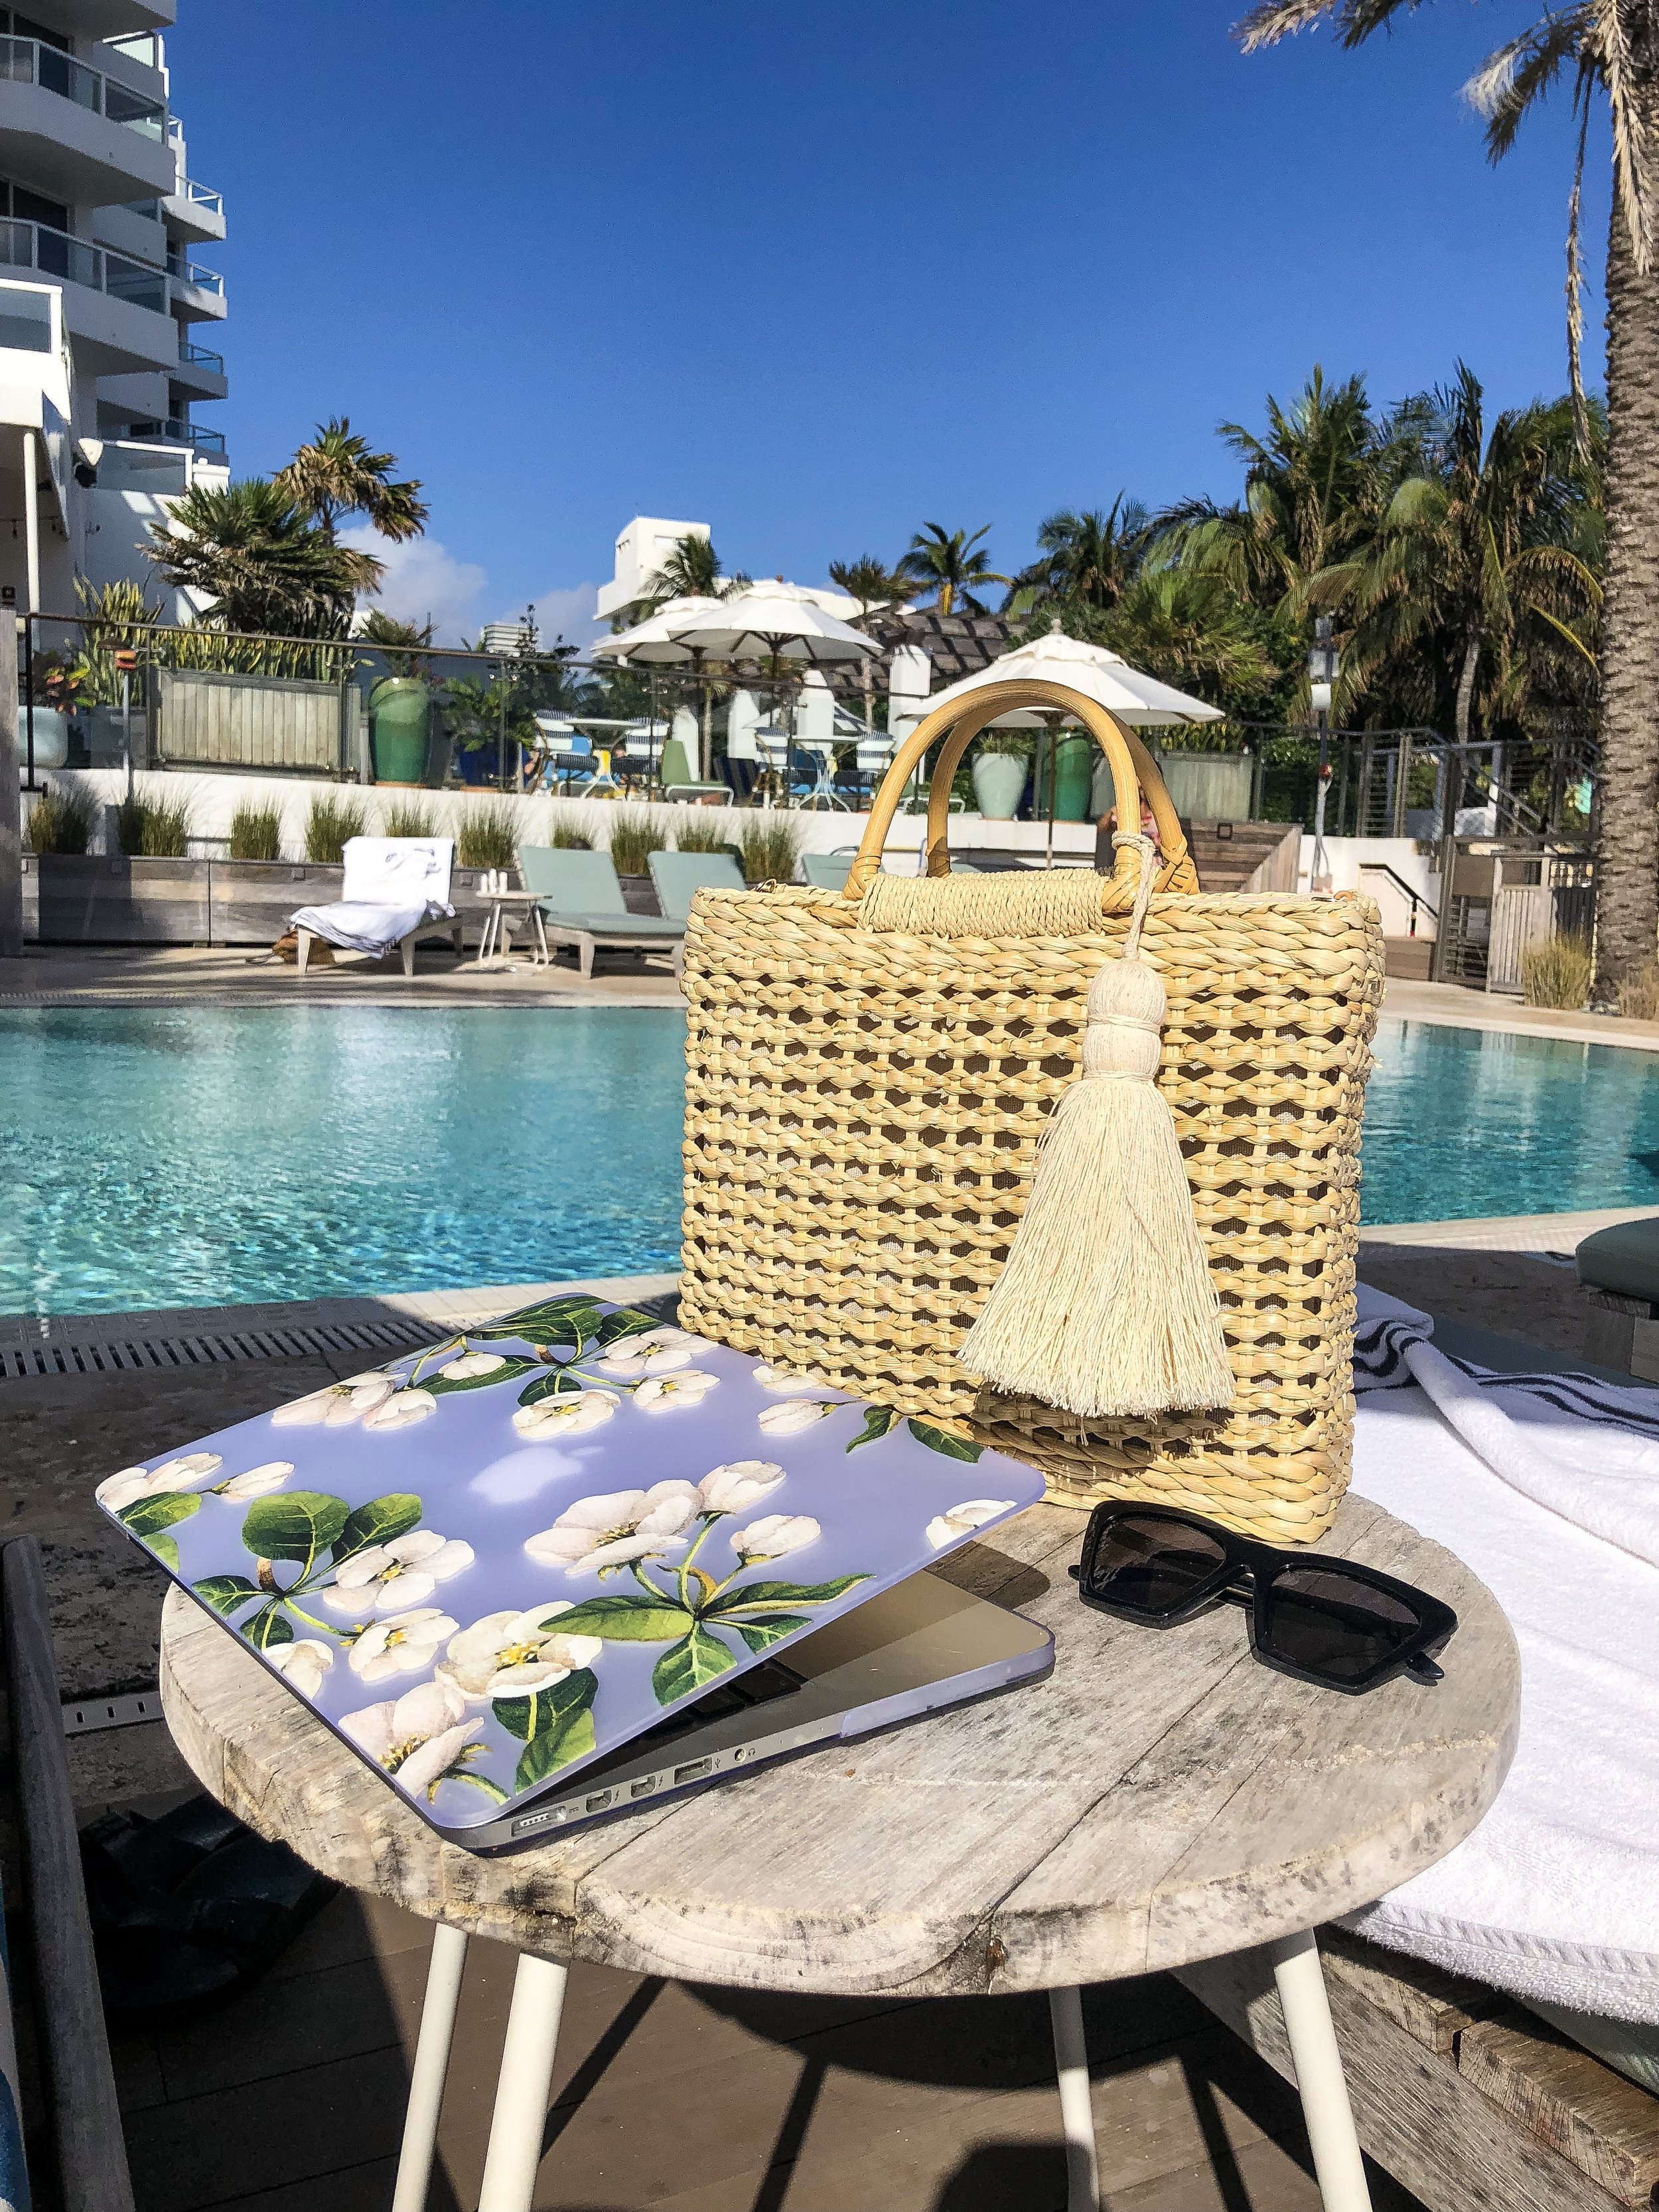 As I write this post, - I'm sitting underneath an umbrella that's protecting me from the Miami sun; trading in the desk inside our South Beach hotel room for a pool view and sea breeze.